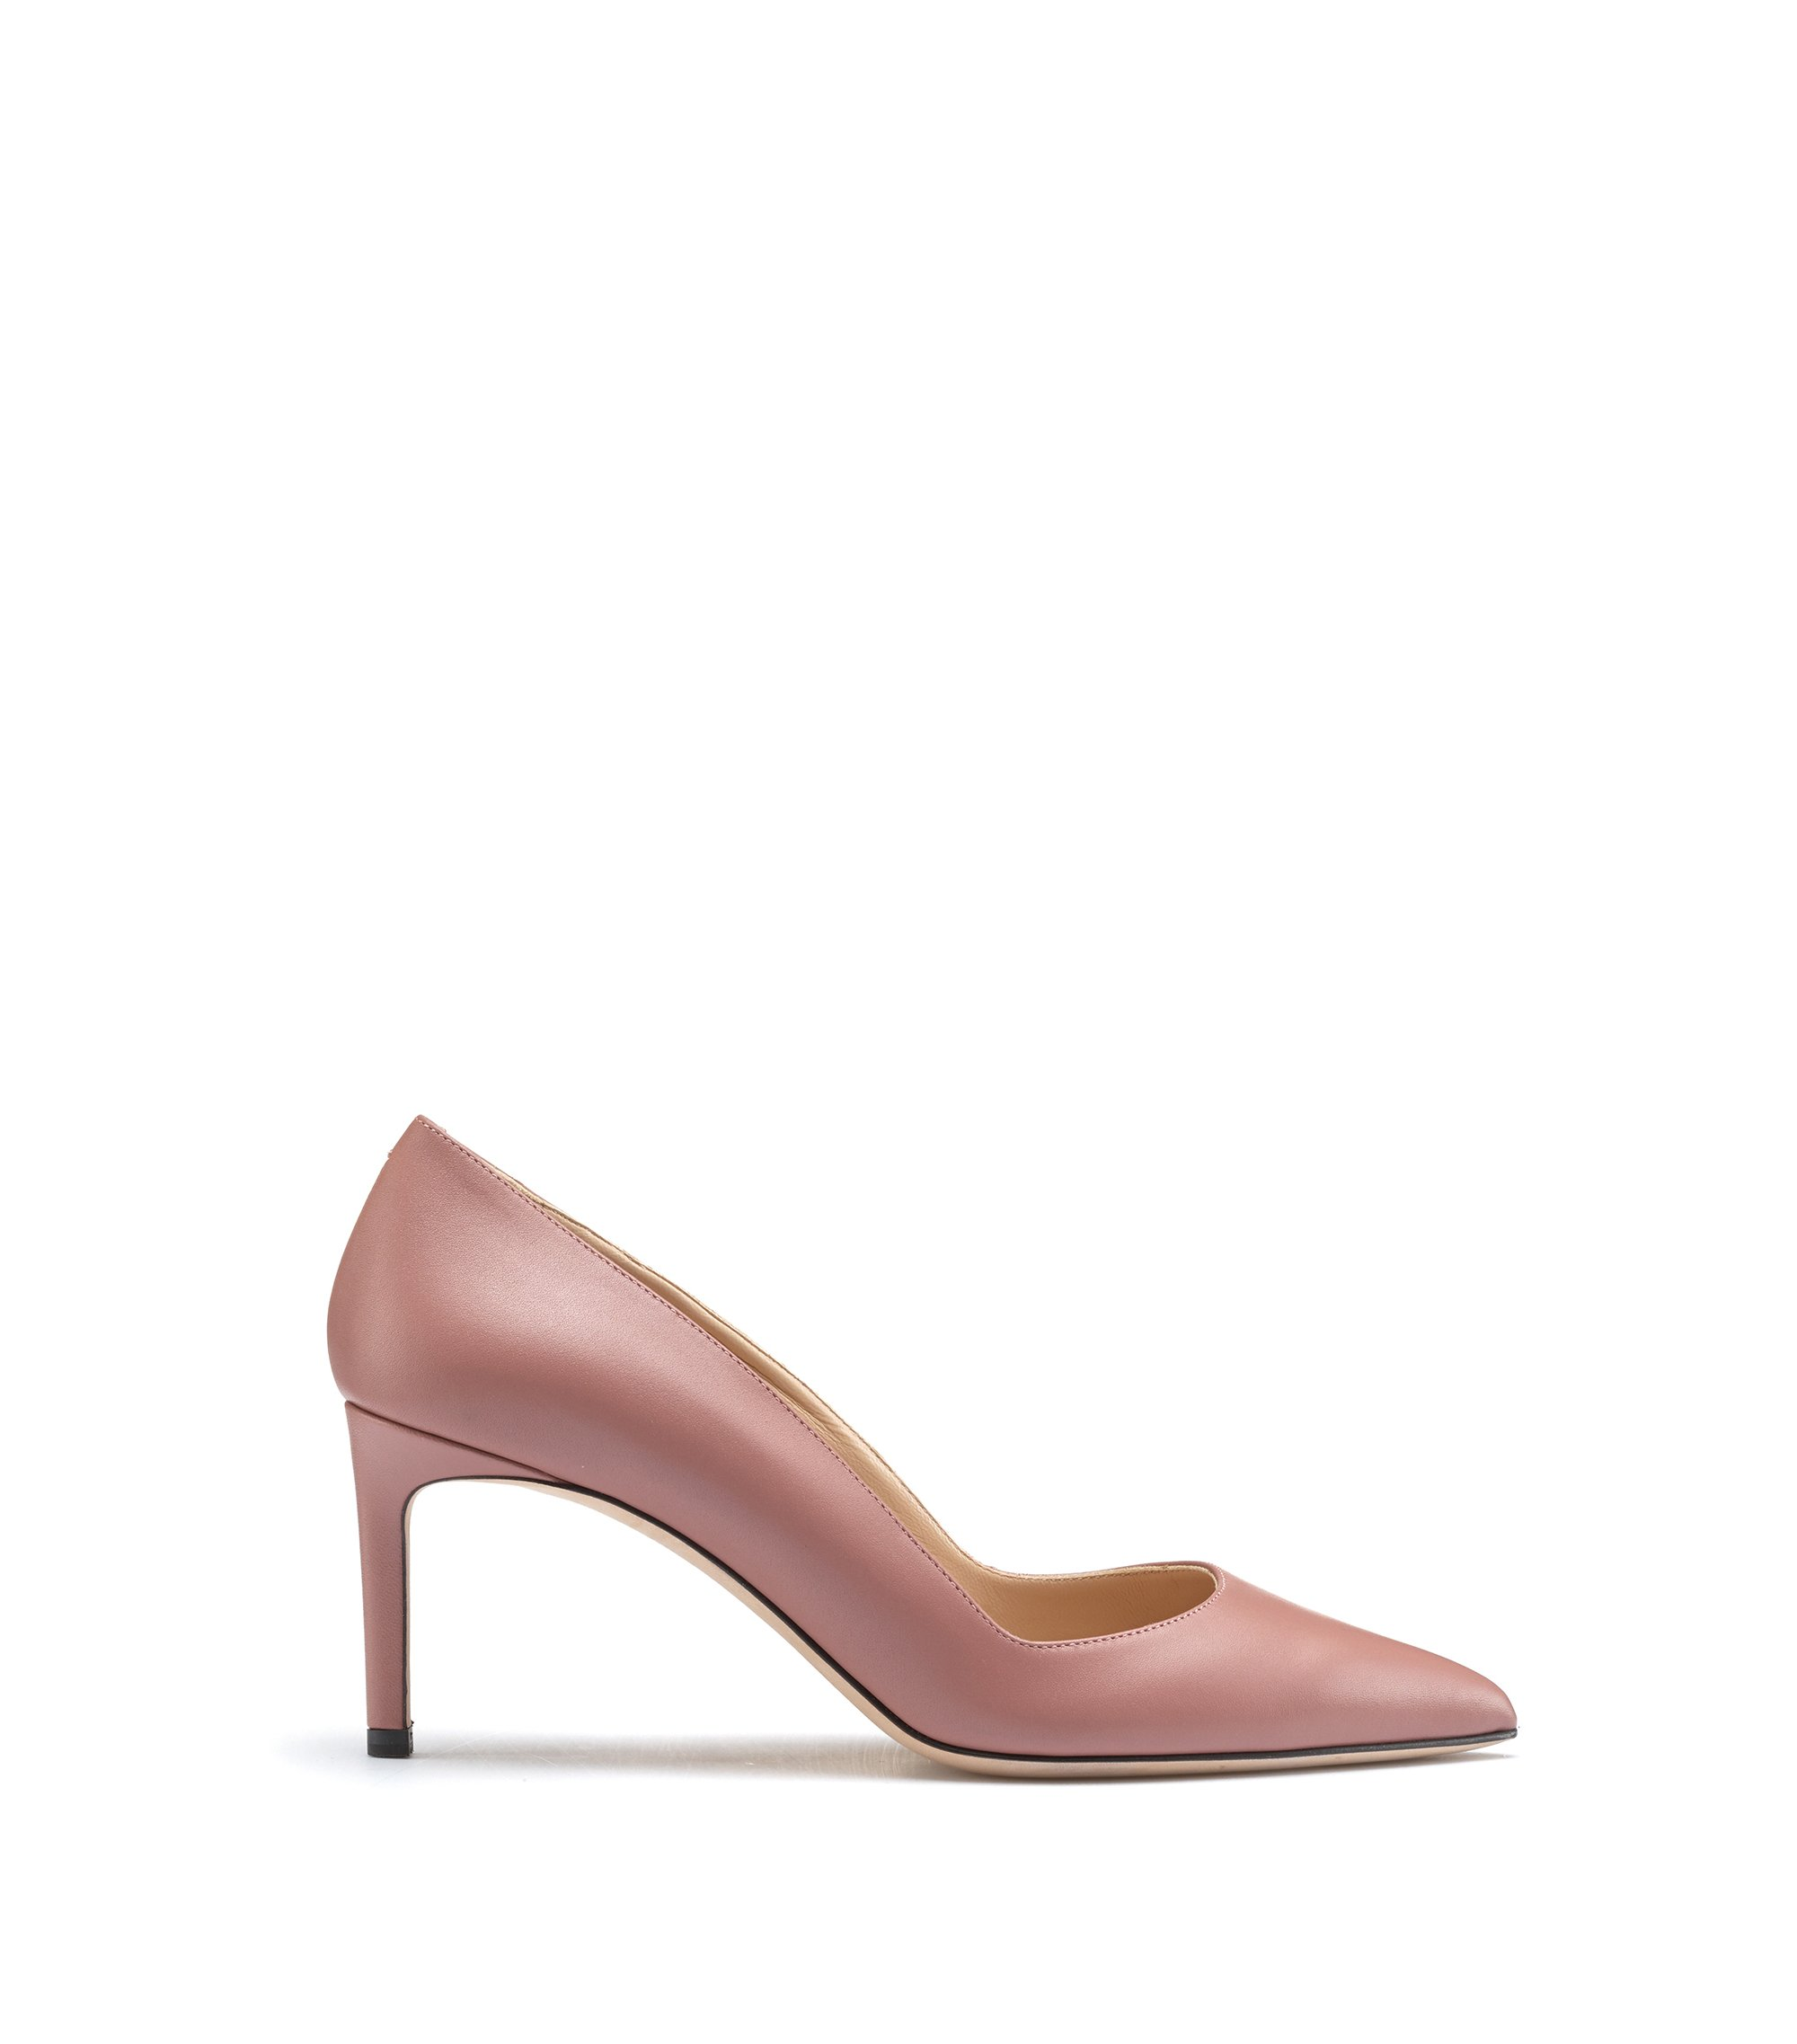 Pointed-toe pumps in smooth Italian leather, light pink